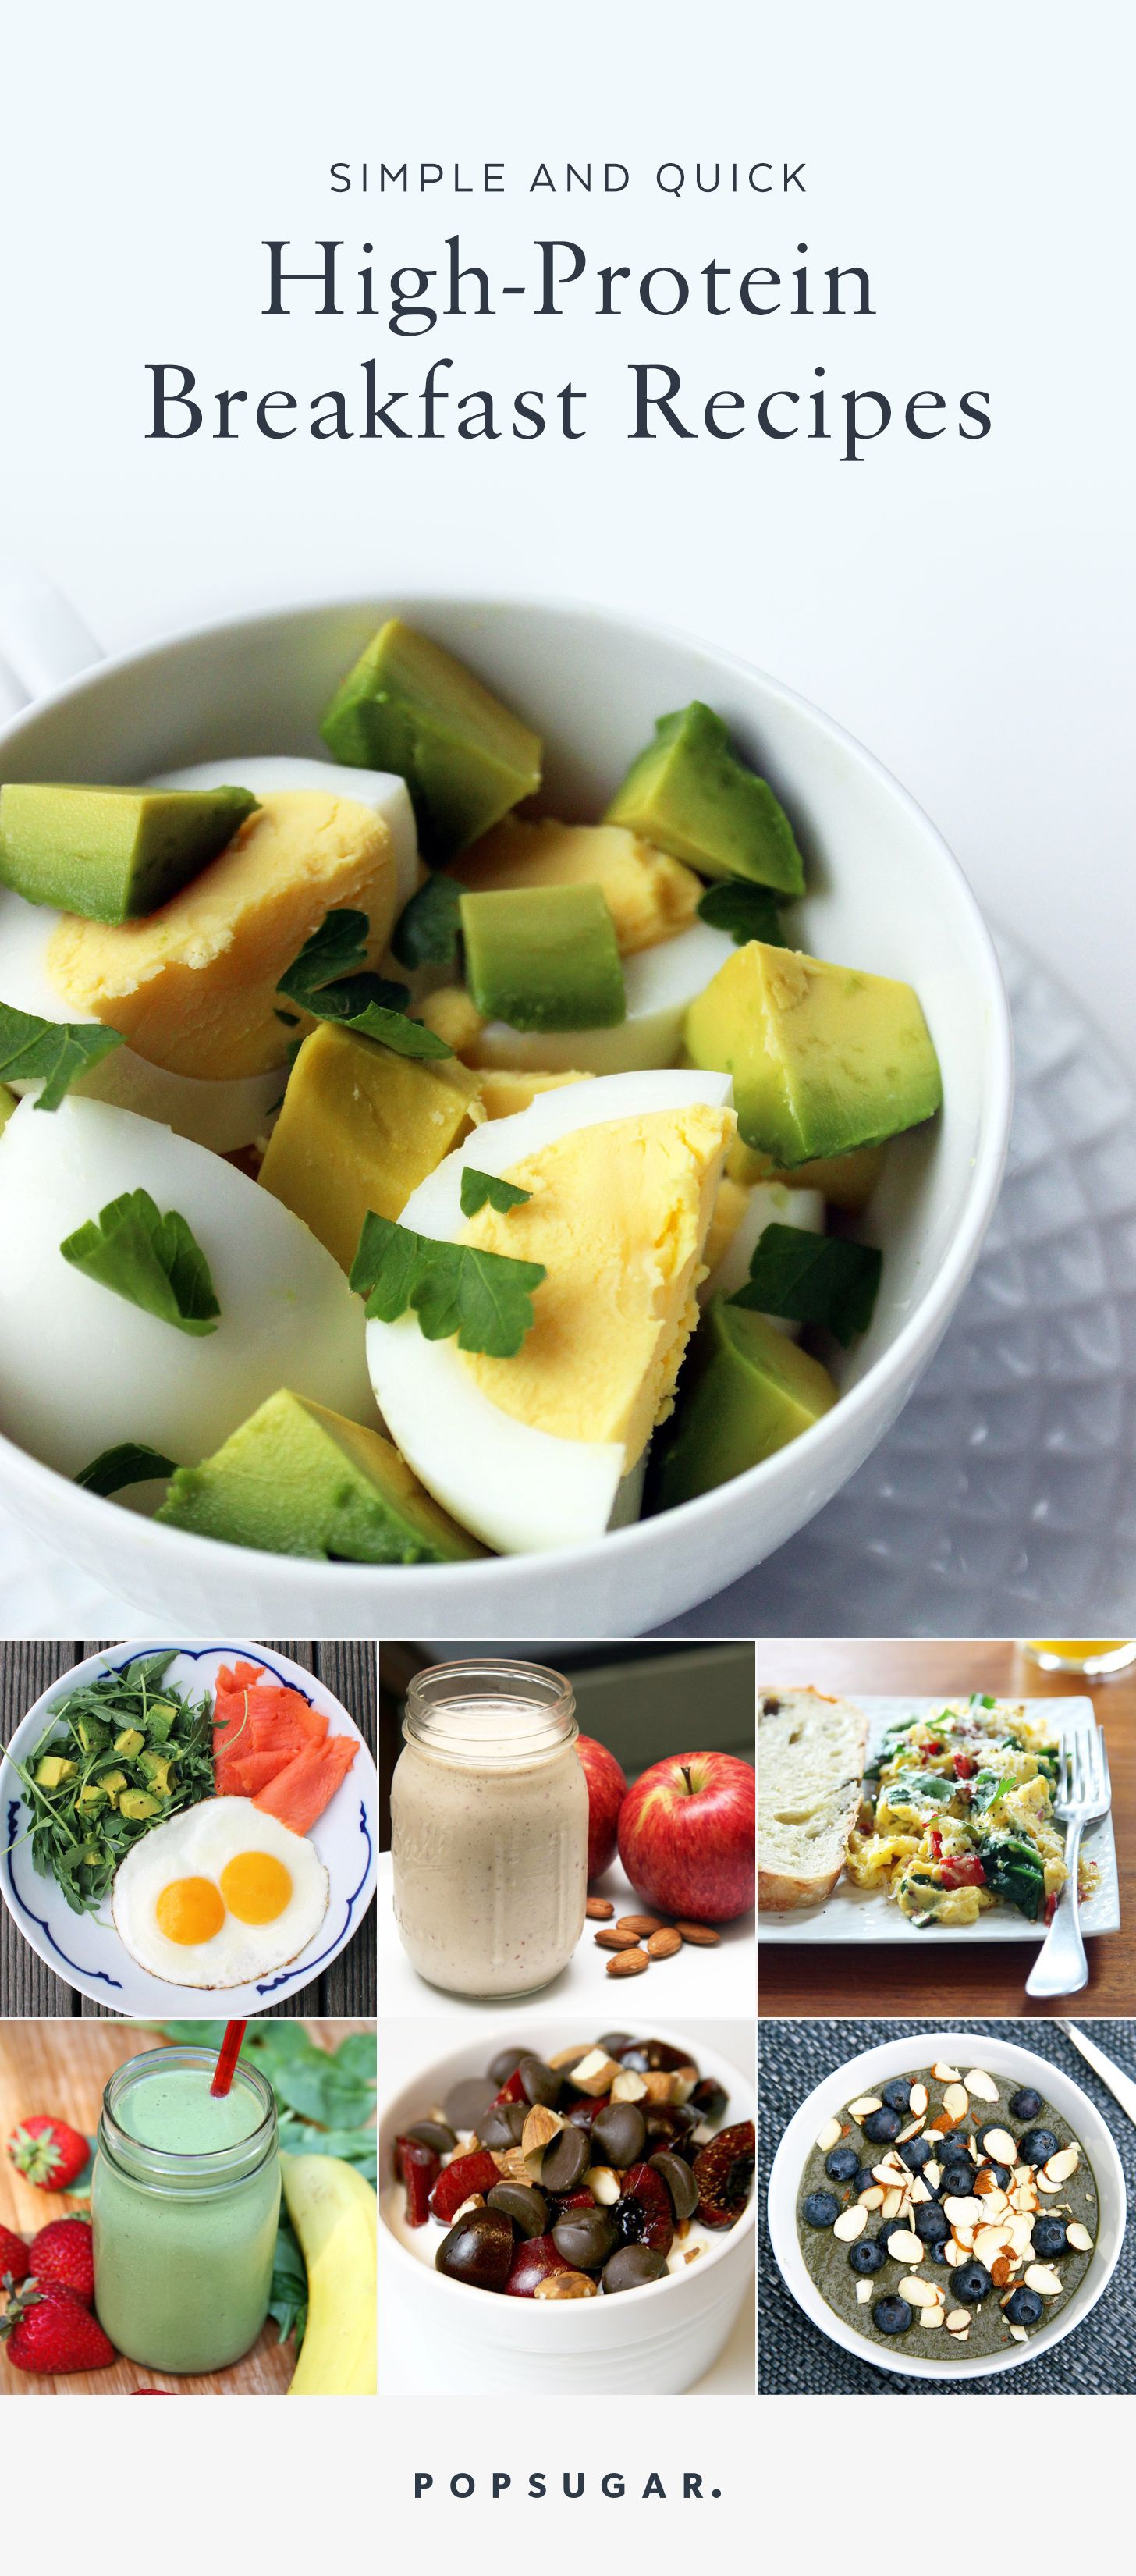 10 Yummy Ways to Add More Protein to Your Smoothies picture